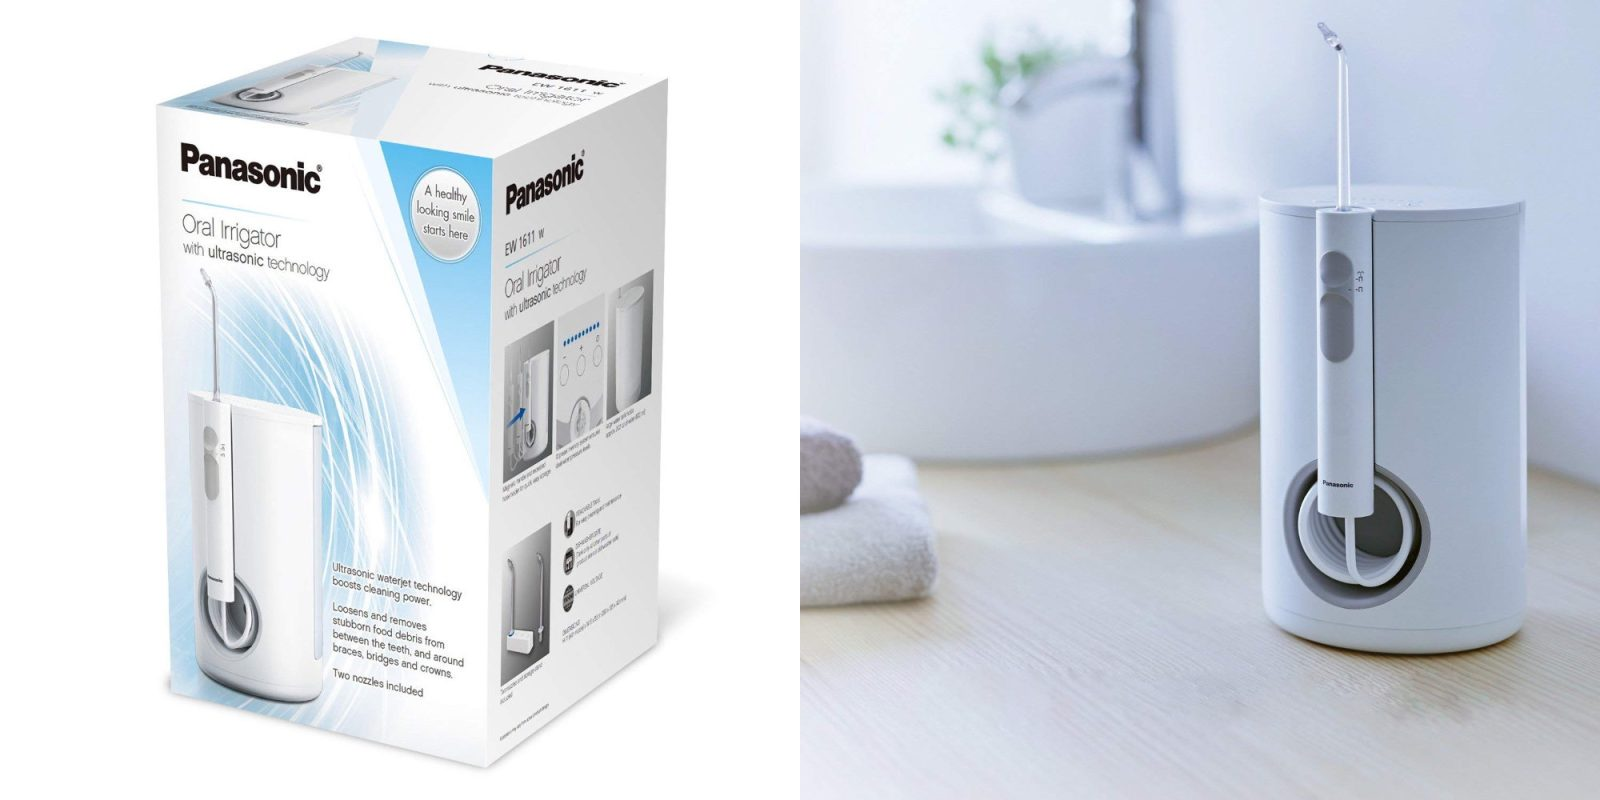 Panasonic's Water Flosser will put you on your dentist's